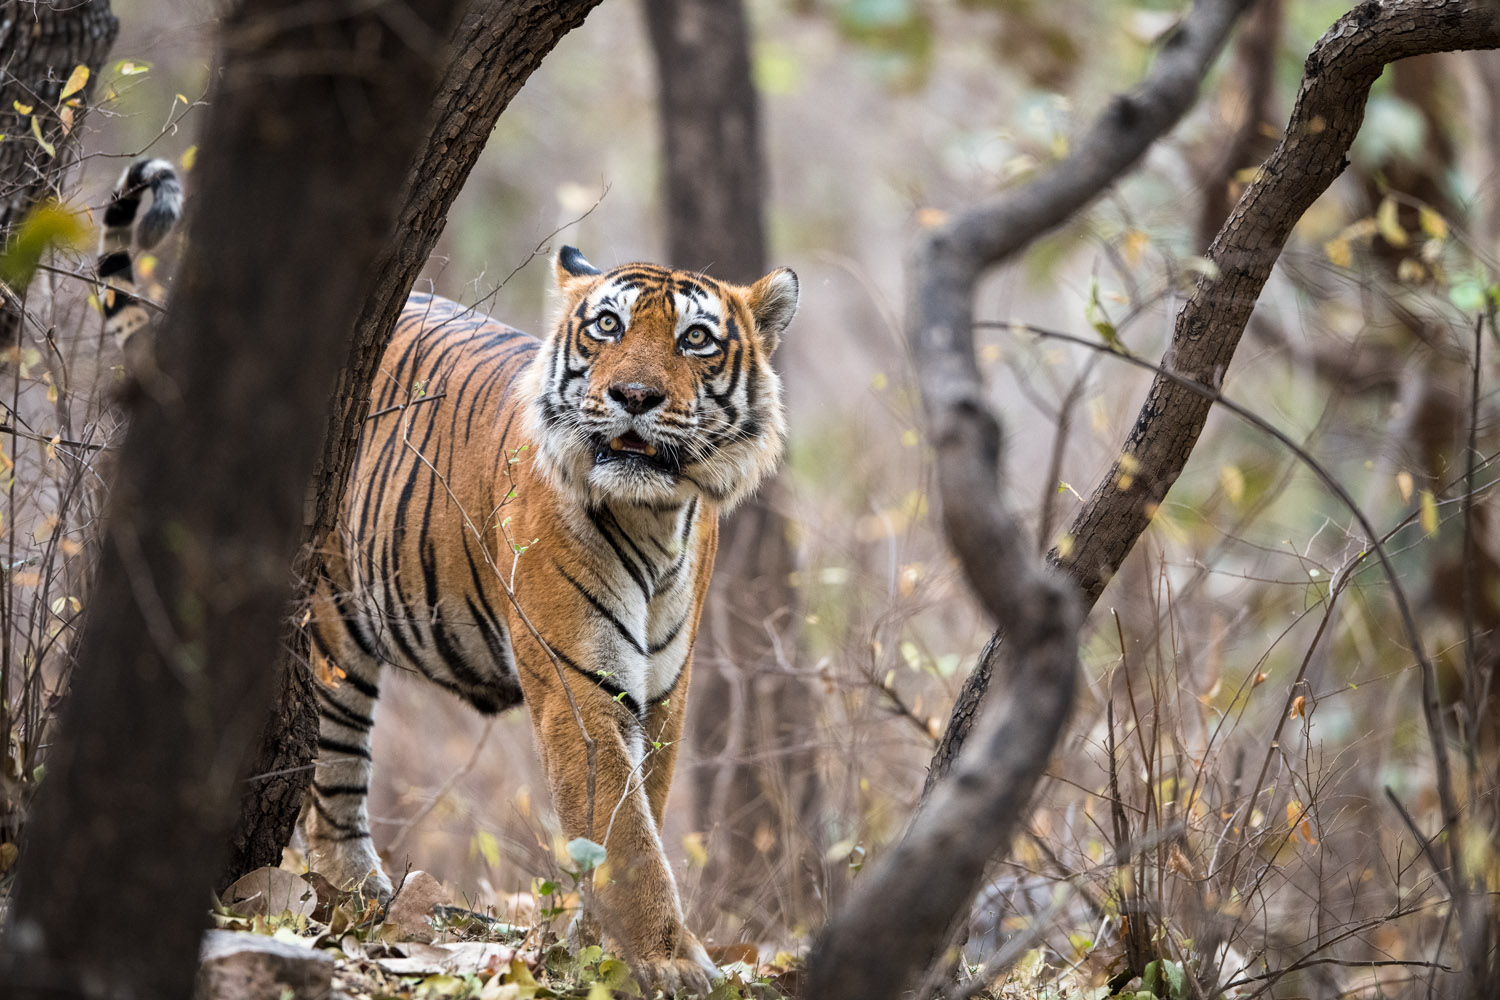 Bengal tiger in forest, Ranthambhore National Park, Rajasthan, India